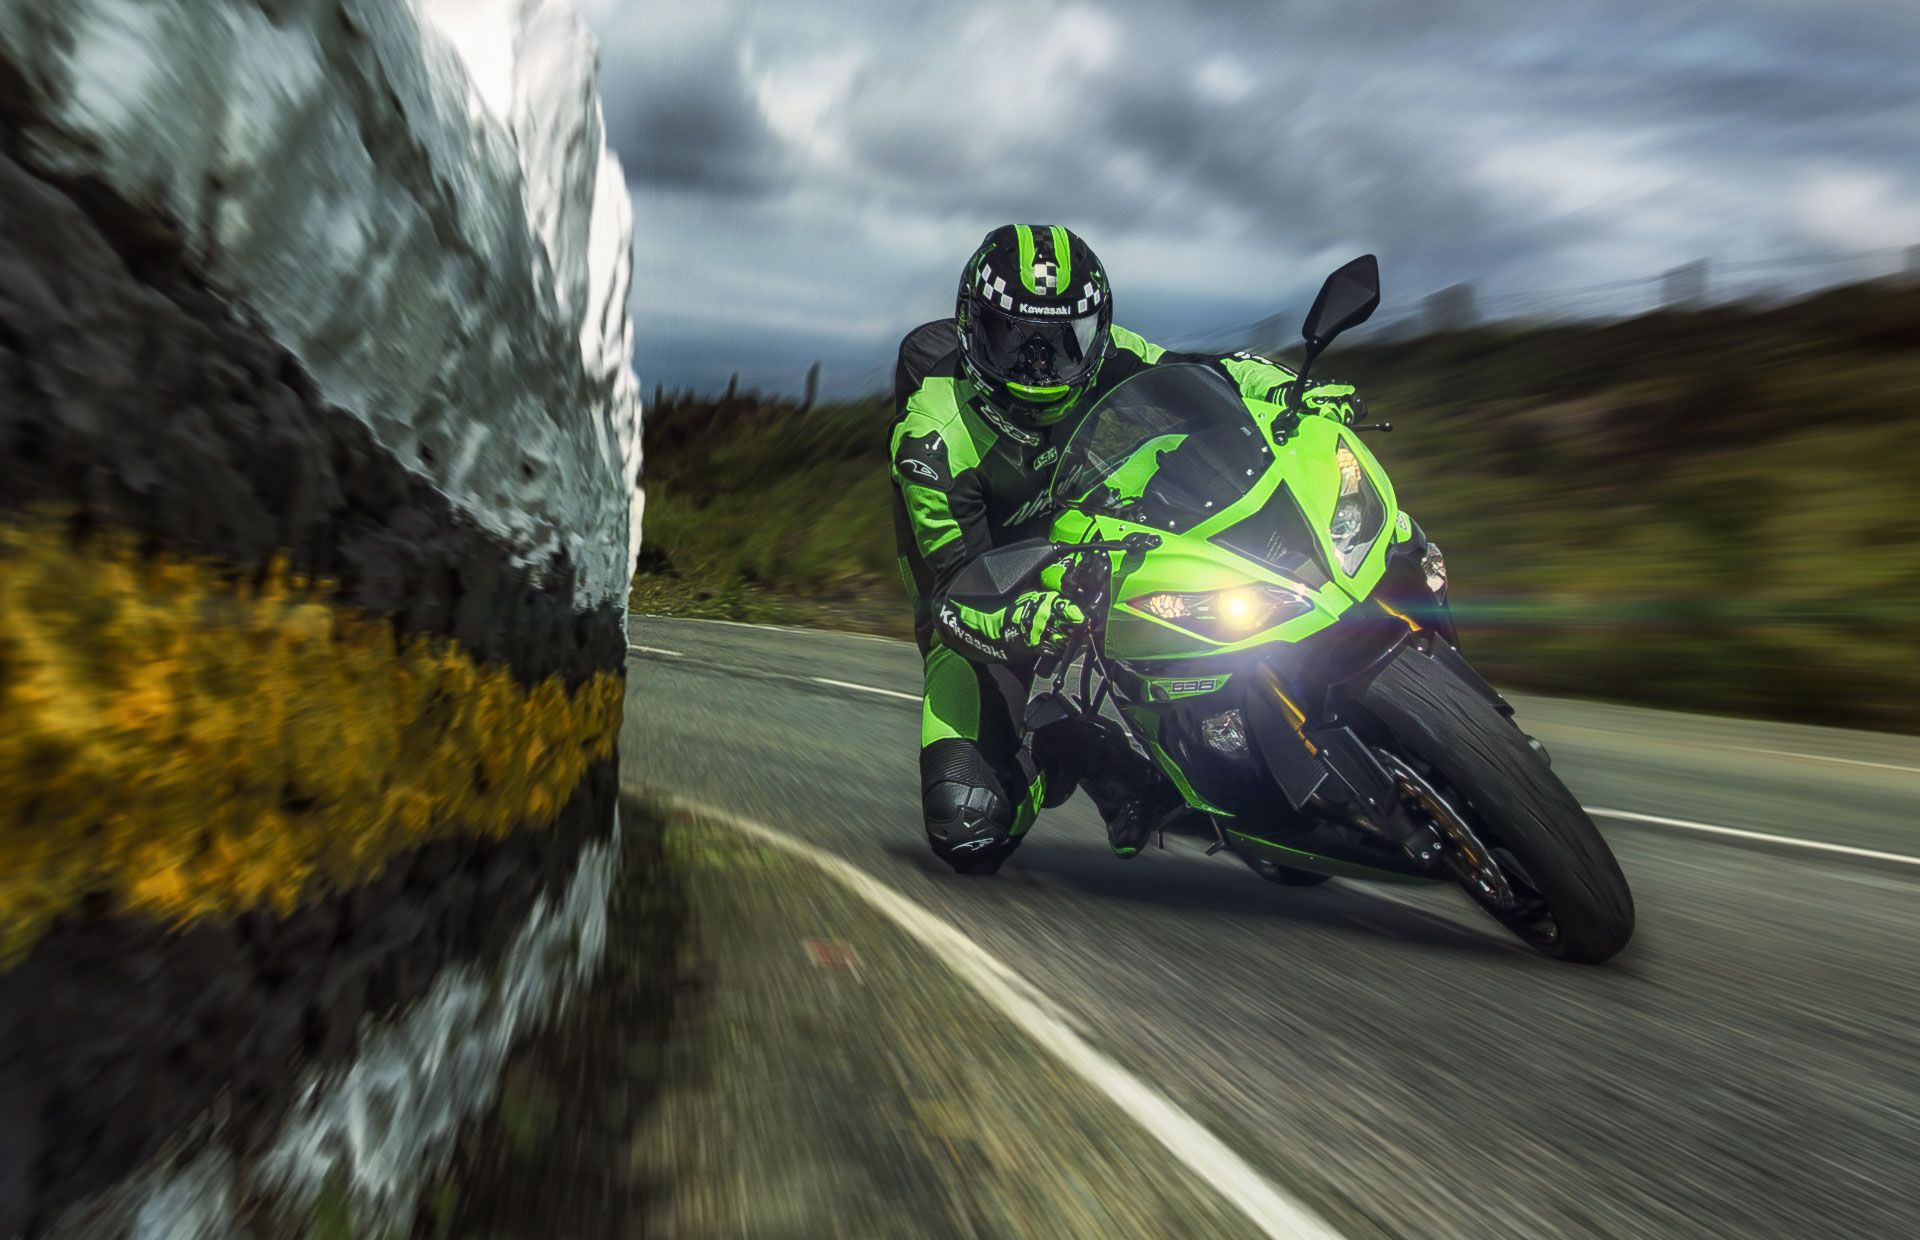 Kawasaki Ninja ZX6R Wallpapers   Top Kawasaki Ninja ZX6R 1920x1240